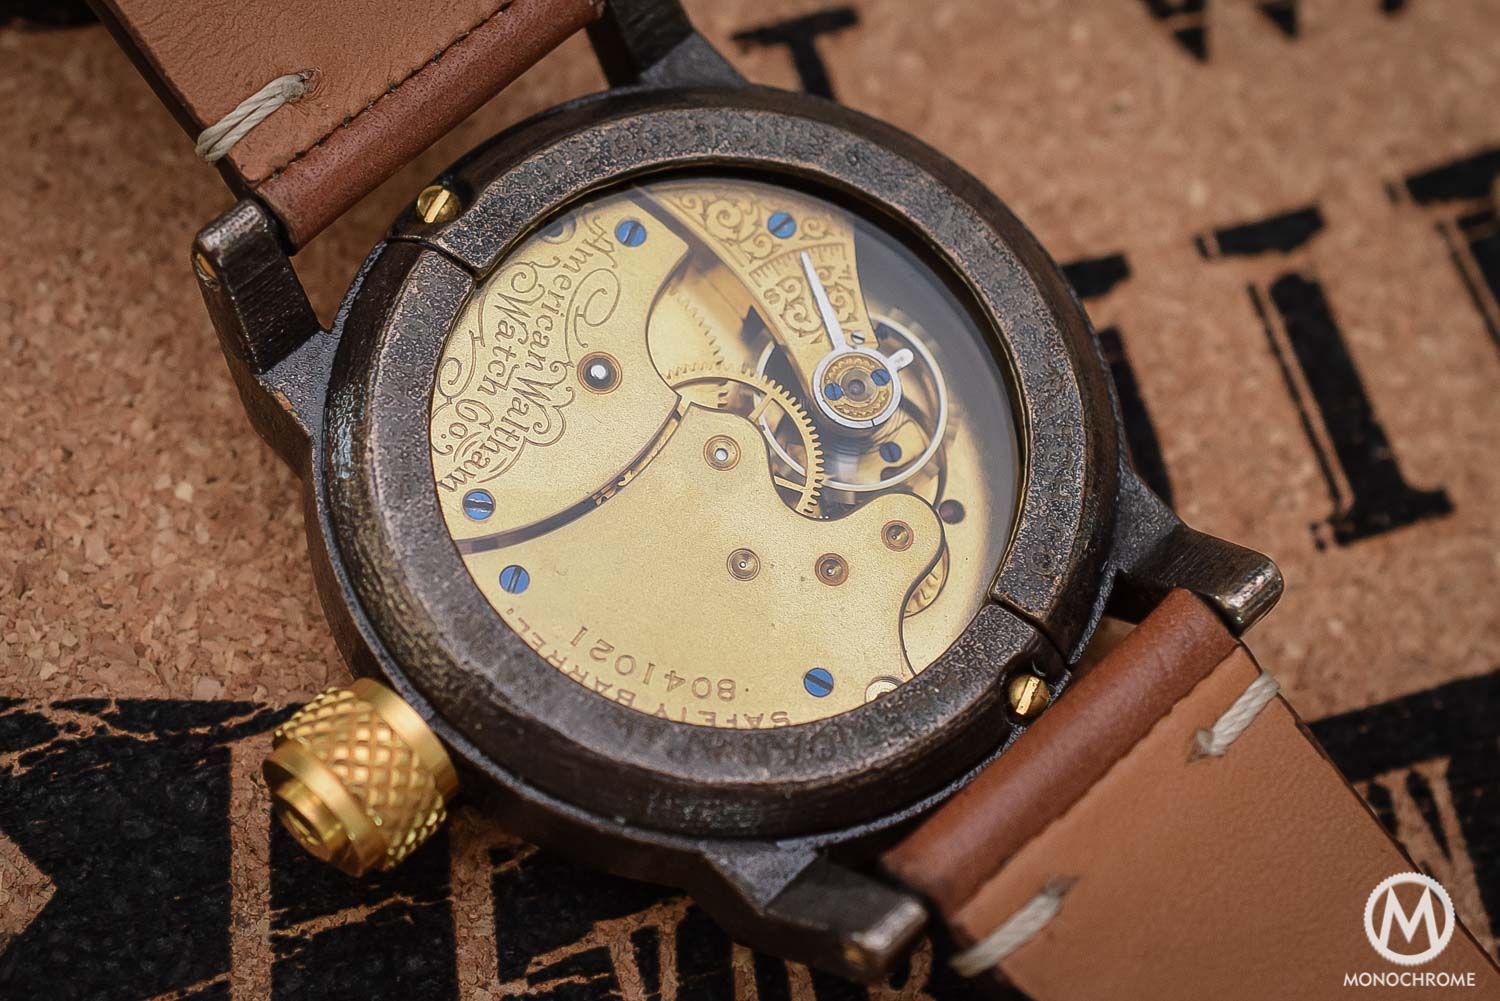 Vortic Watch Co - antique movements and 3D printed cases - 2